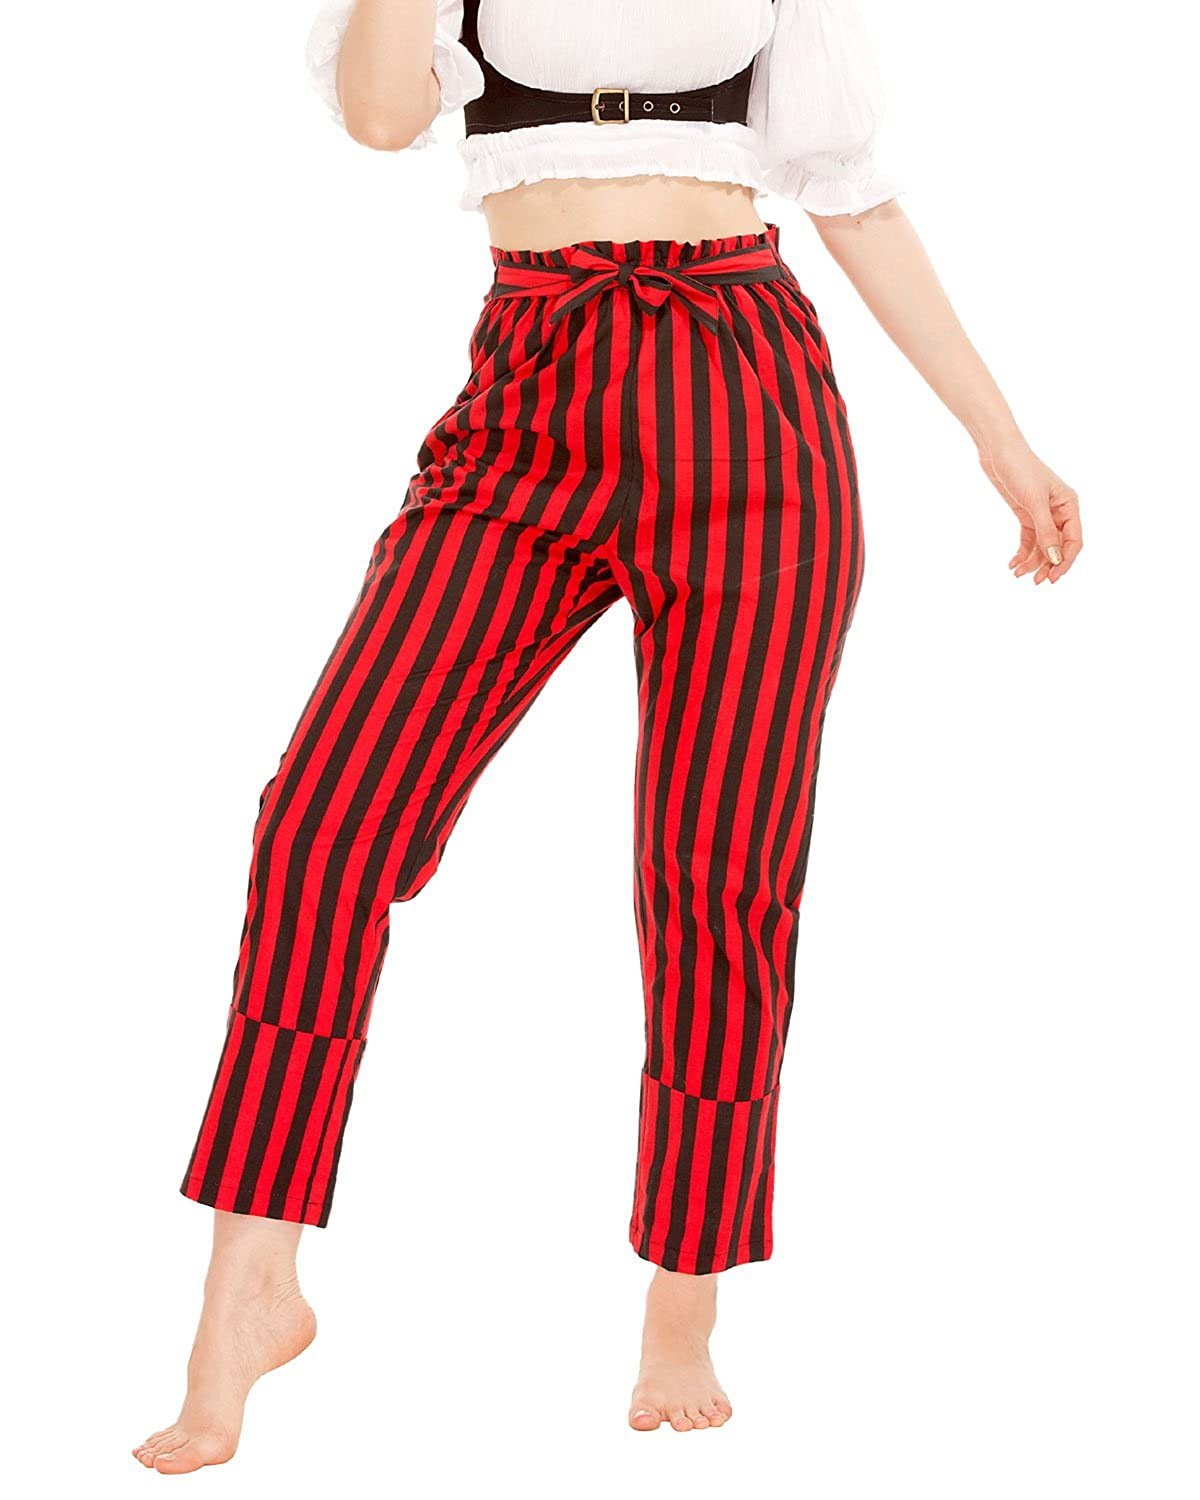 Women's Pirate Wench Cotton Black & Red Striped Self-Tie Cosplay Costume Pants by ThePirateDressing - DeluxeAdultCostumes.com